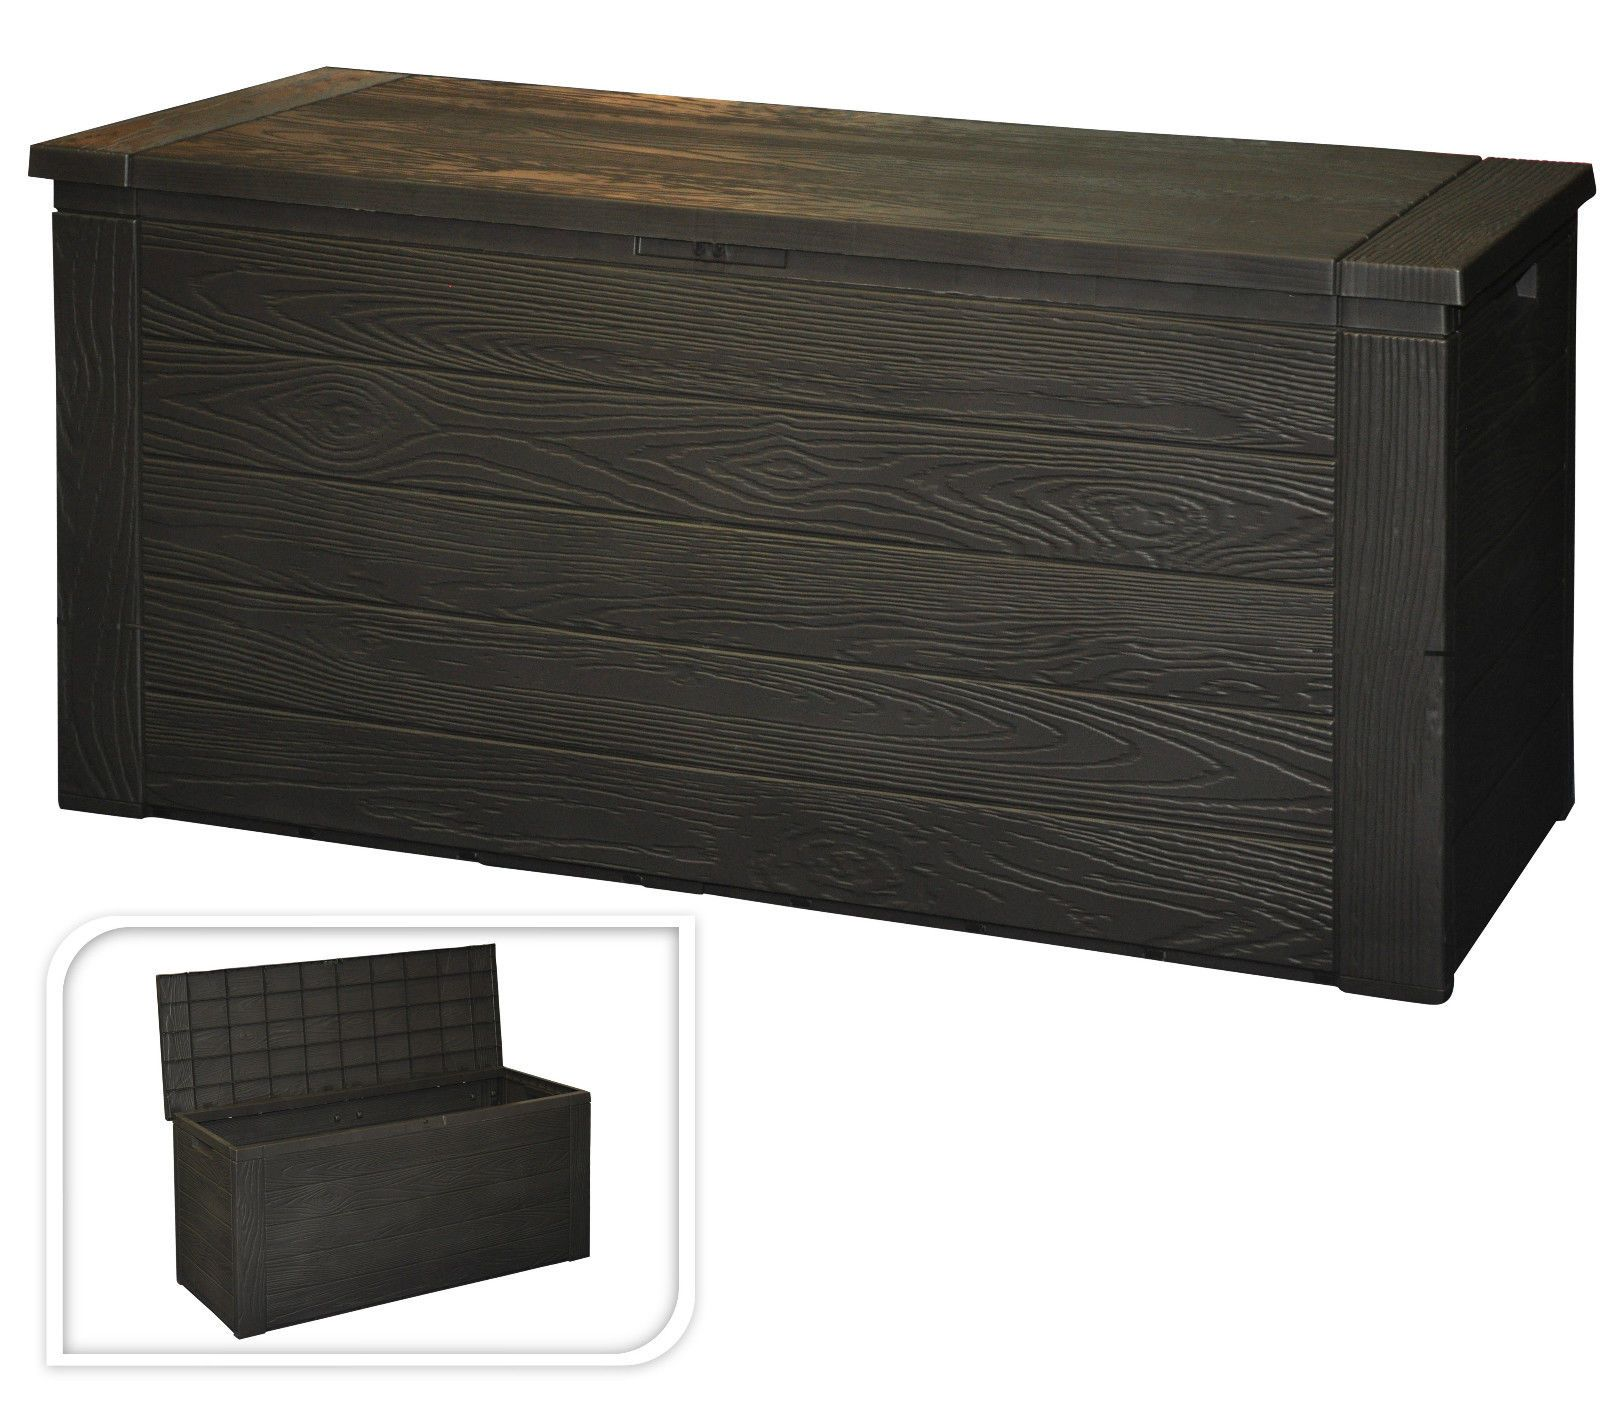 Wood Grain Plastic Garden Storage Box With Lid Garden Patio